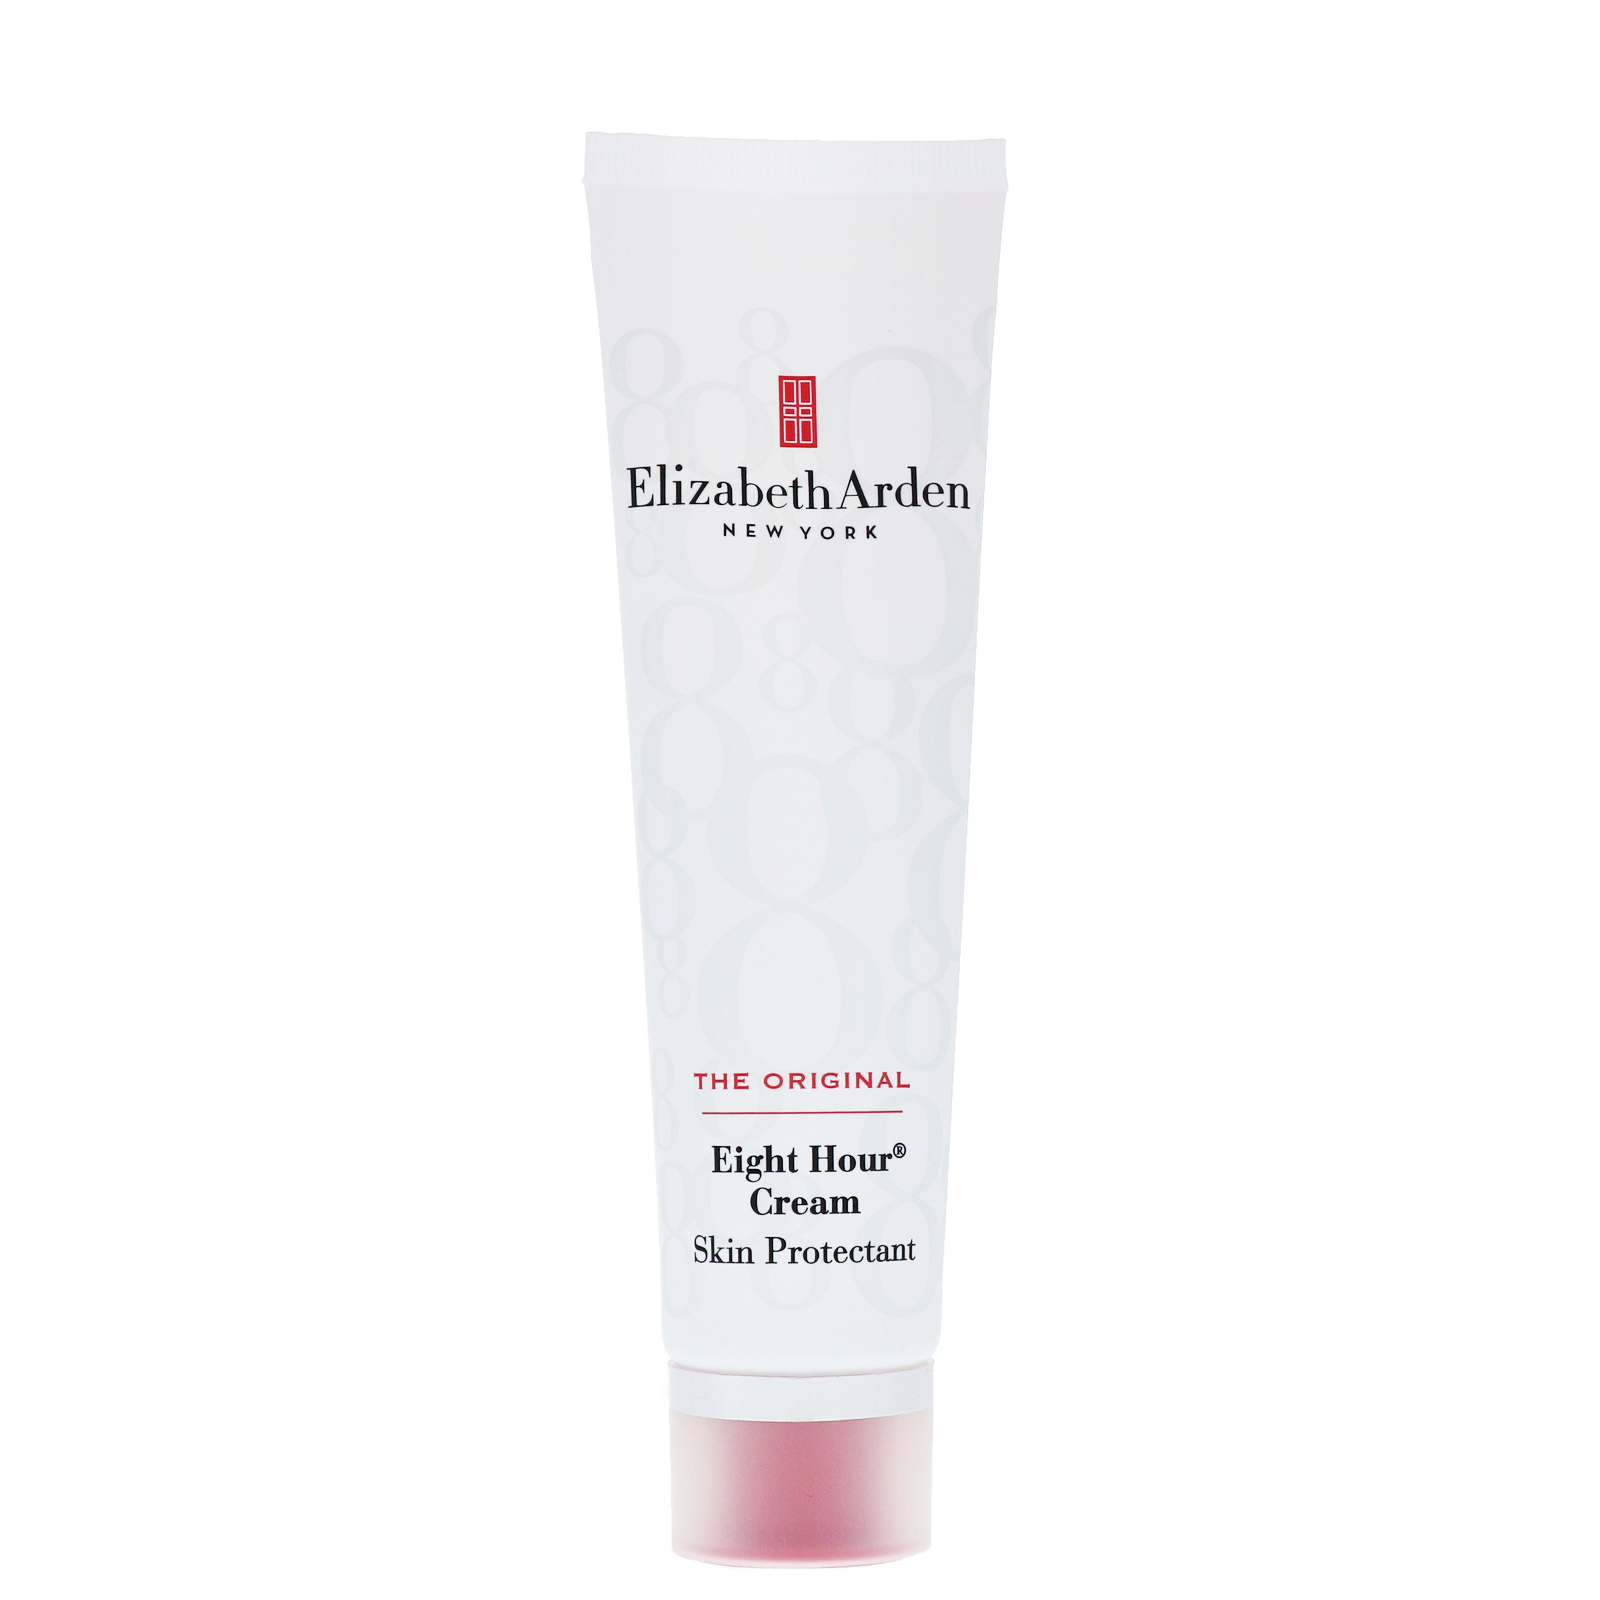 Elizabeth Arden Moisturisers Eight Hour Skin Protectant Cream 50ml / 1.7 fl.oz.